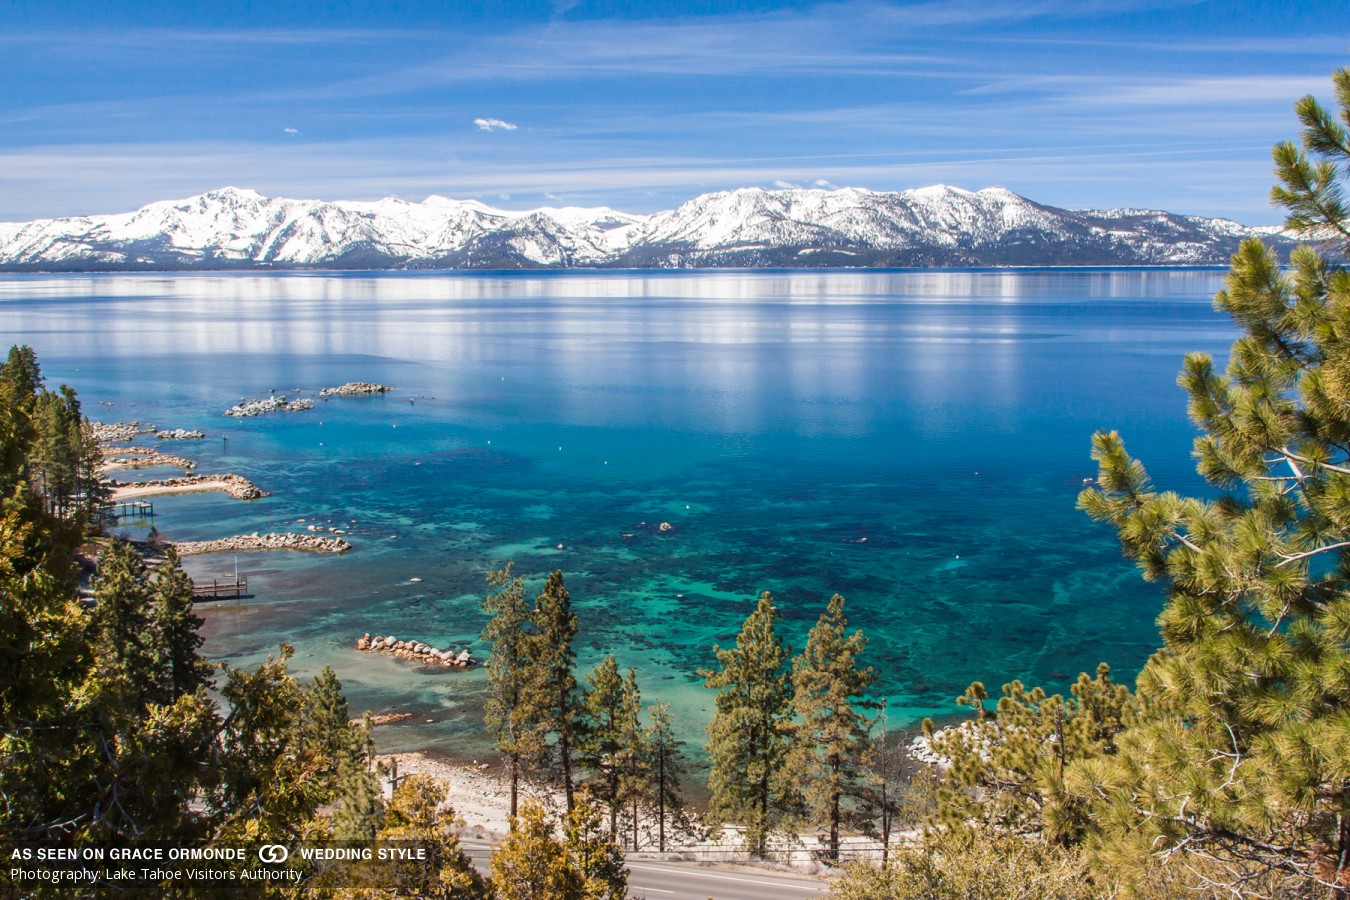 lake-tahoe-california-2014-002